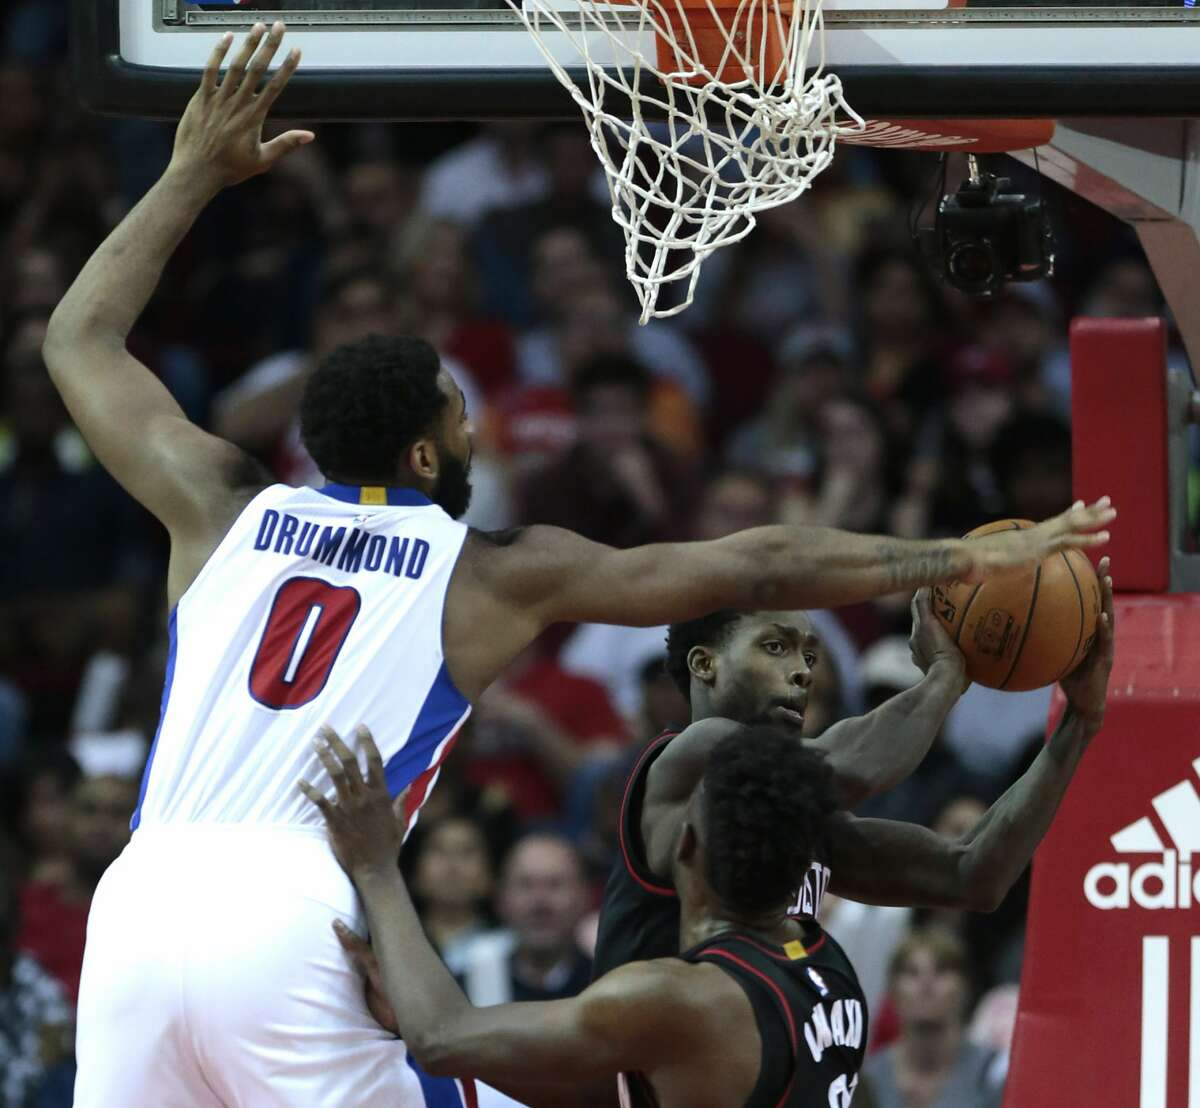 Houston Rockets guard Patrick Beverley (2) looks to pass under the basket defended by Detroit Pistons center Andre Drummond (0) during the fourth quarter of an NBA basketball game at Toyota Center on Friday, April 7, 2017, in Houston. ( Brett Coomer / Houston Chronicle )